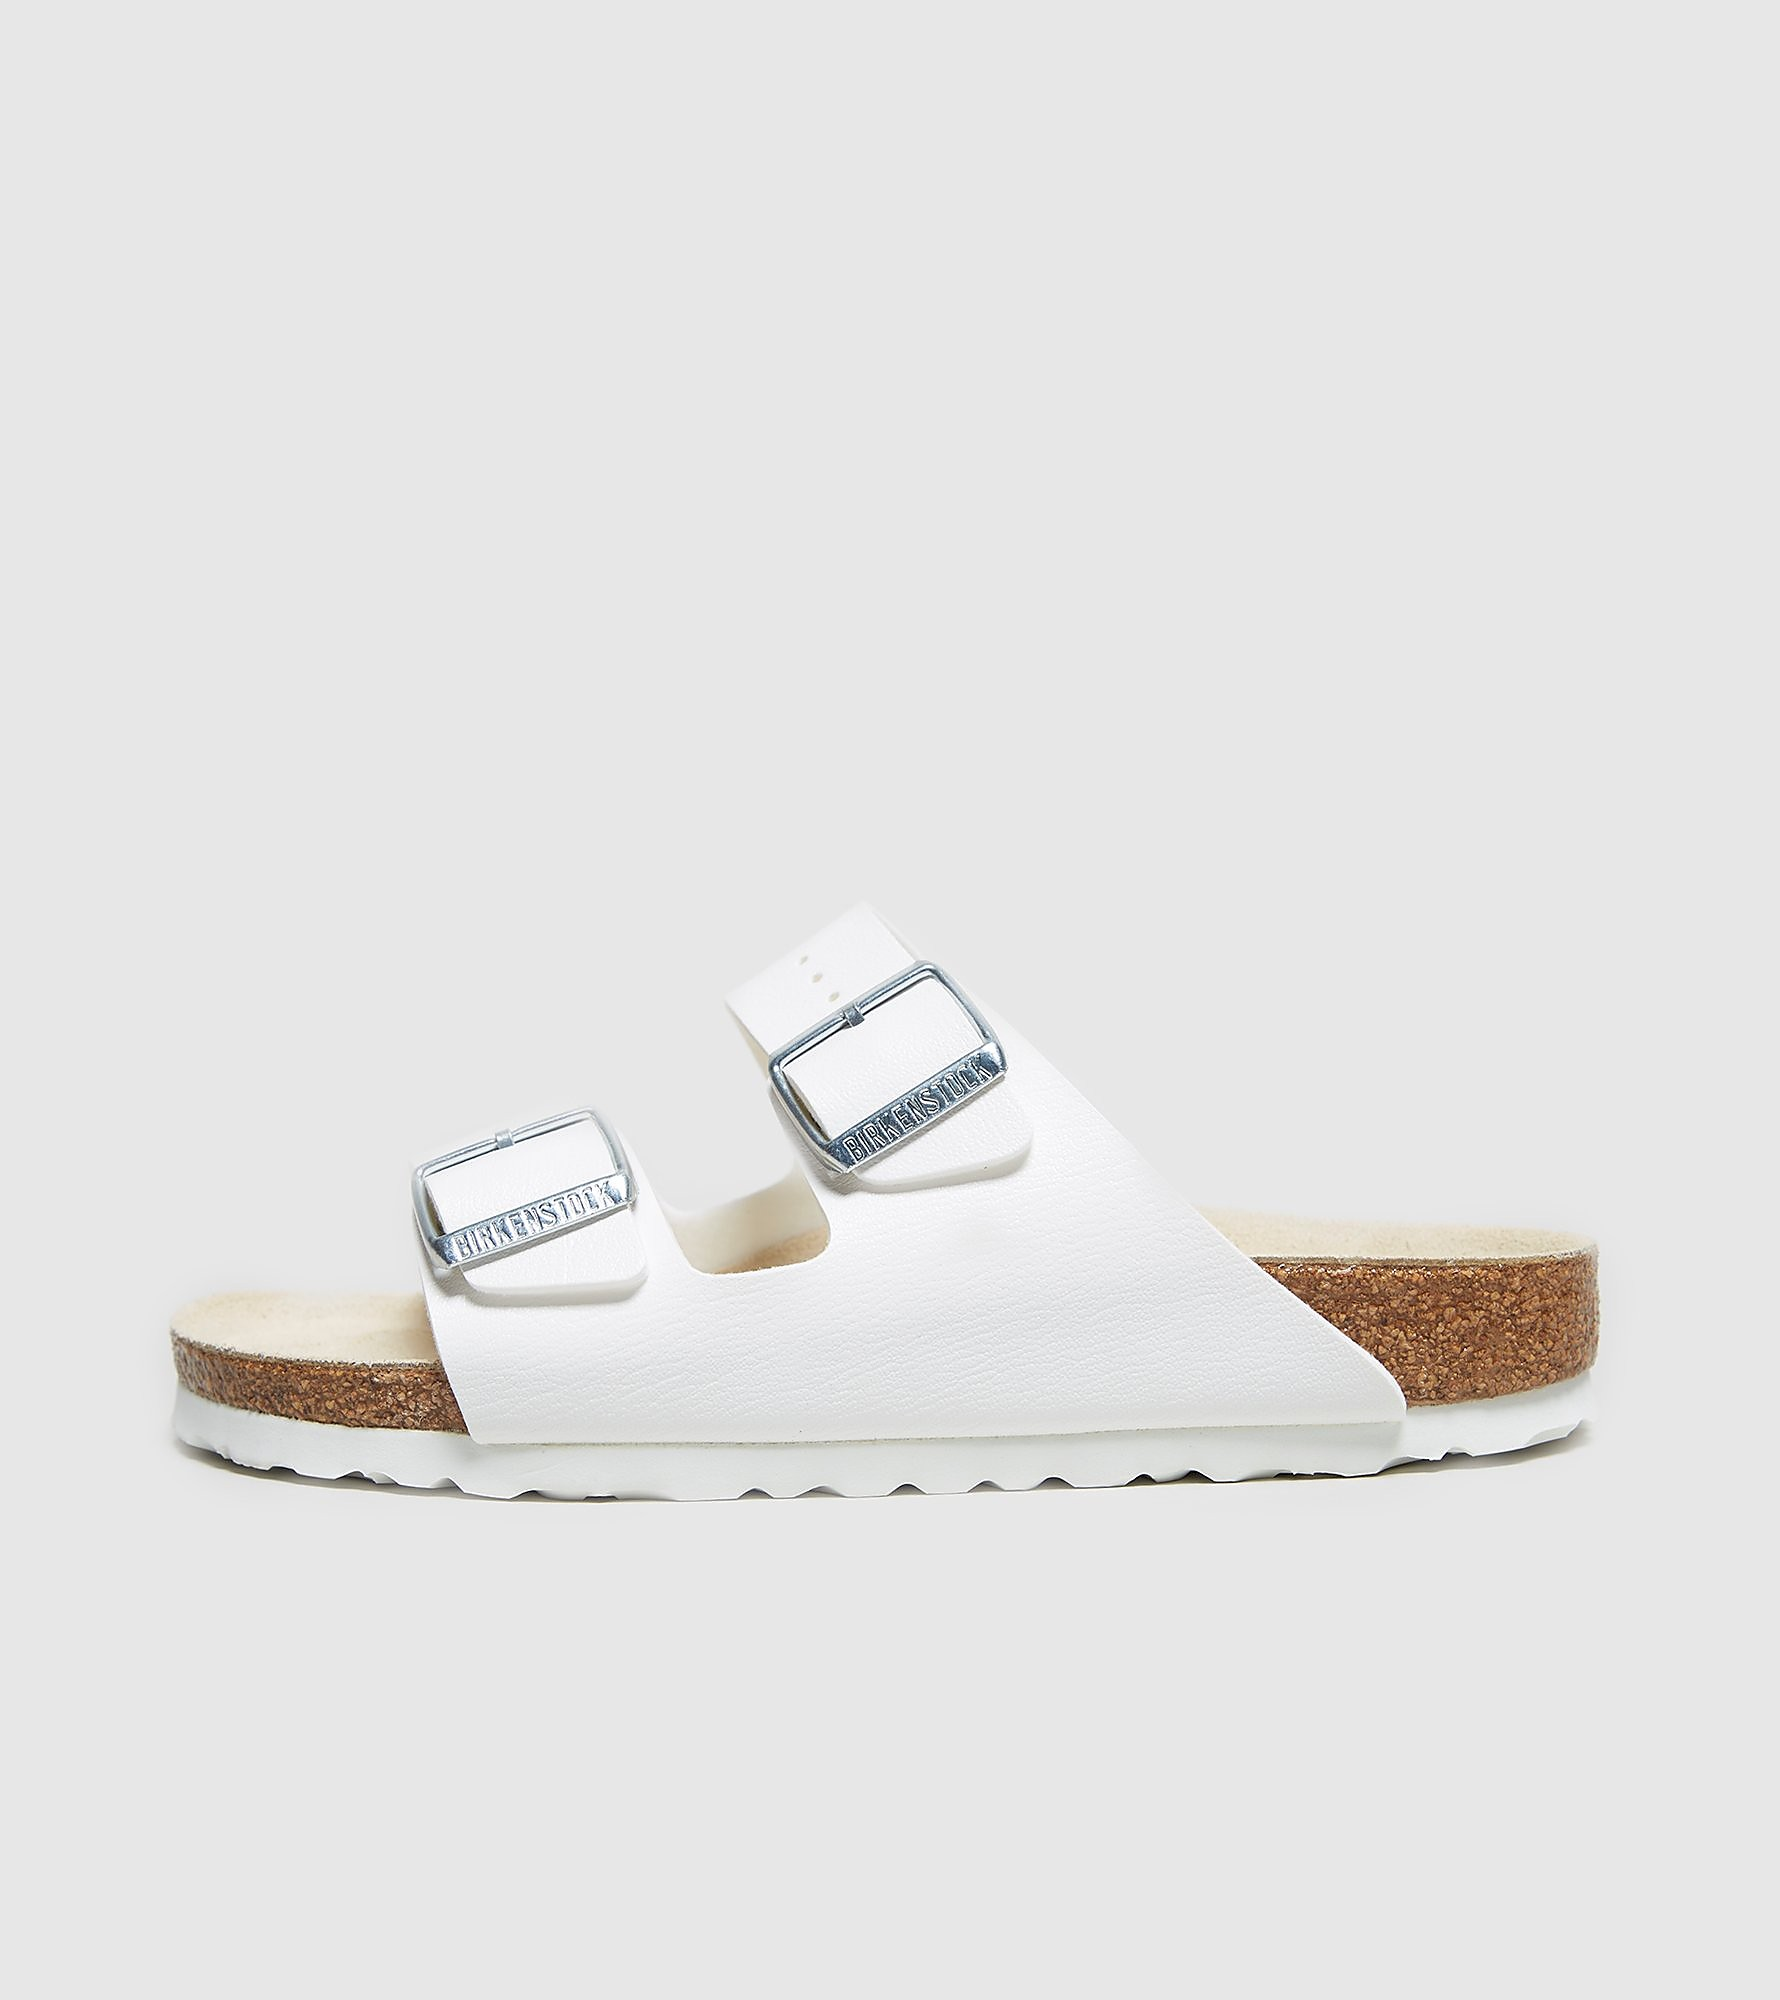 Birkenstock Arizona Sandals Women's